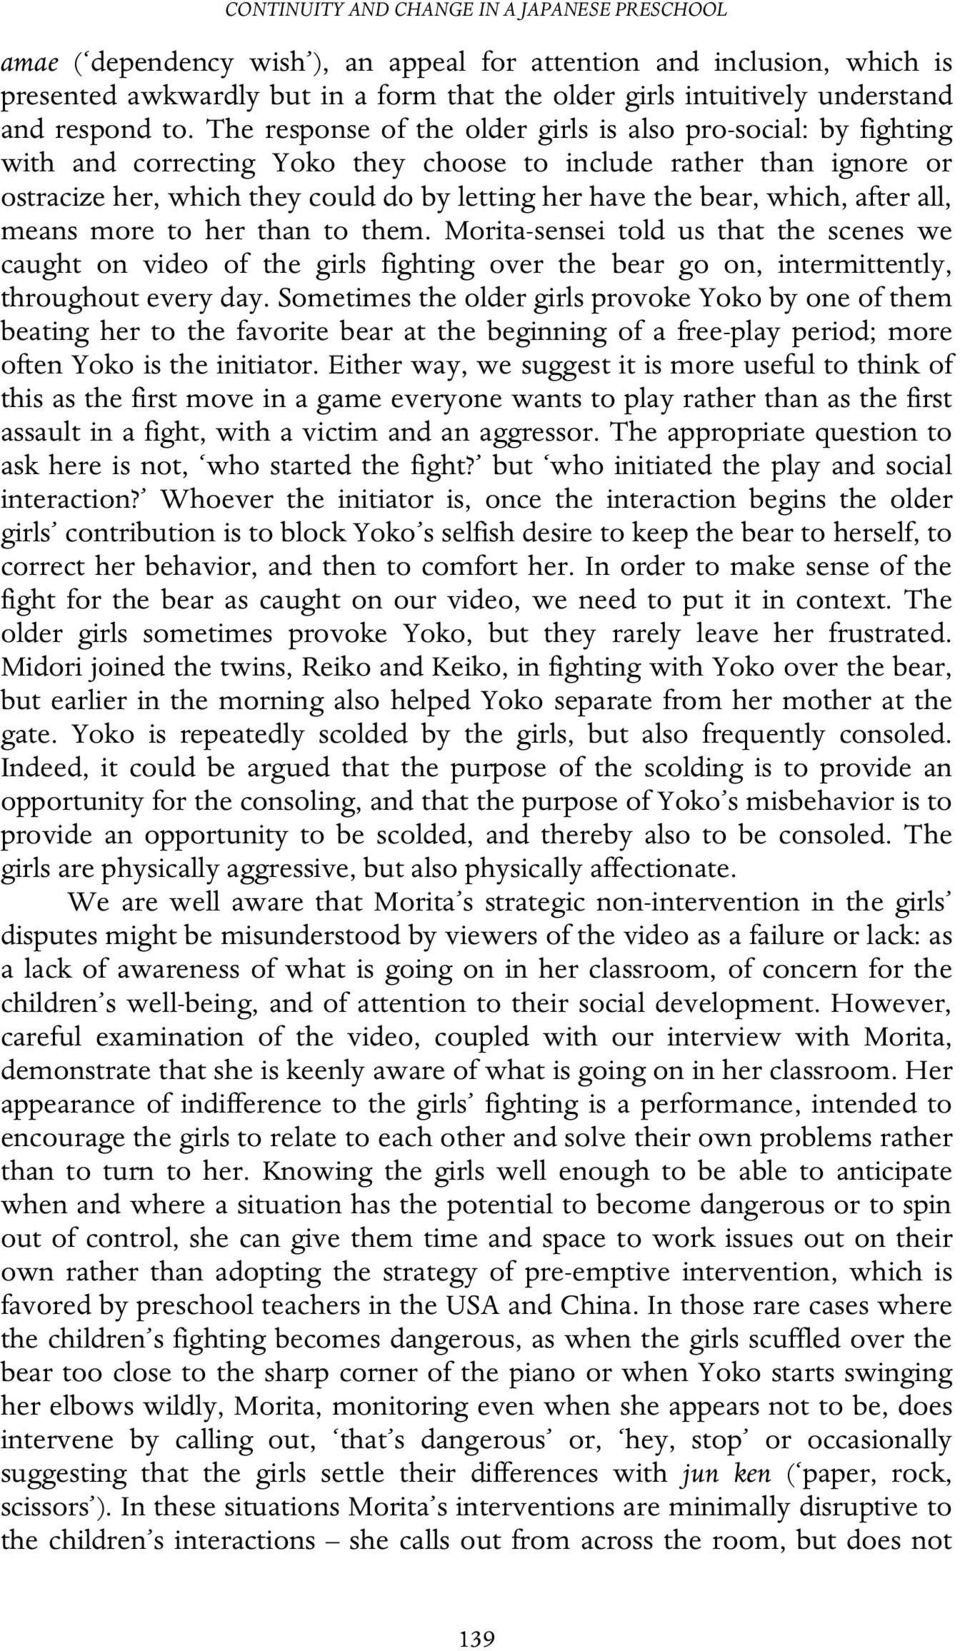 The response of the older girls is also pro-social: by fighting with and correcting Yoko they choose to include rather than ignore or ostracize her, which they could do by letting her have the bear,